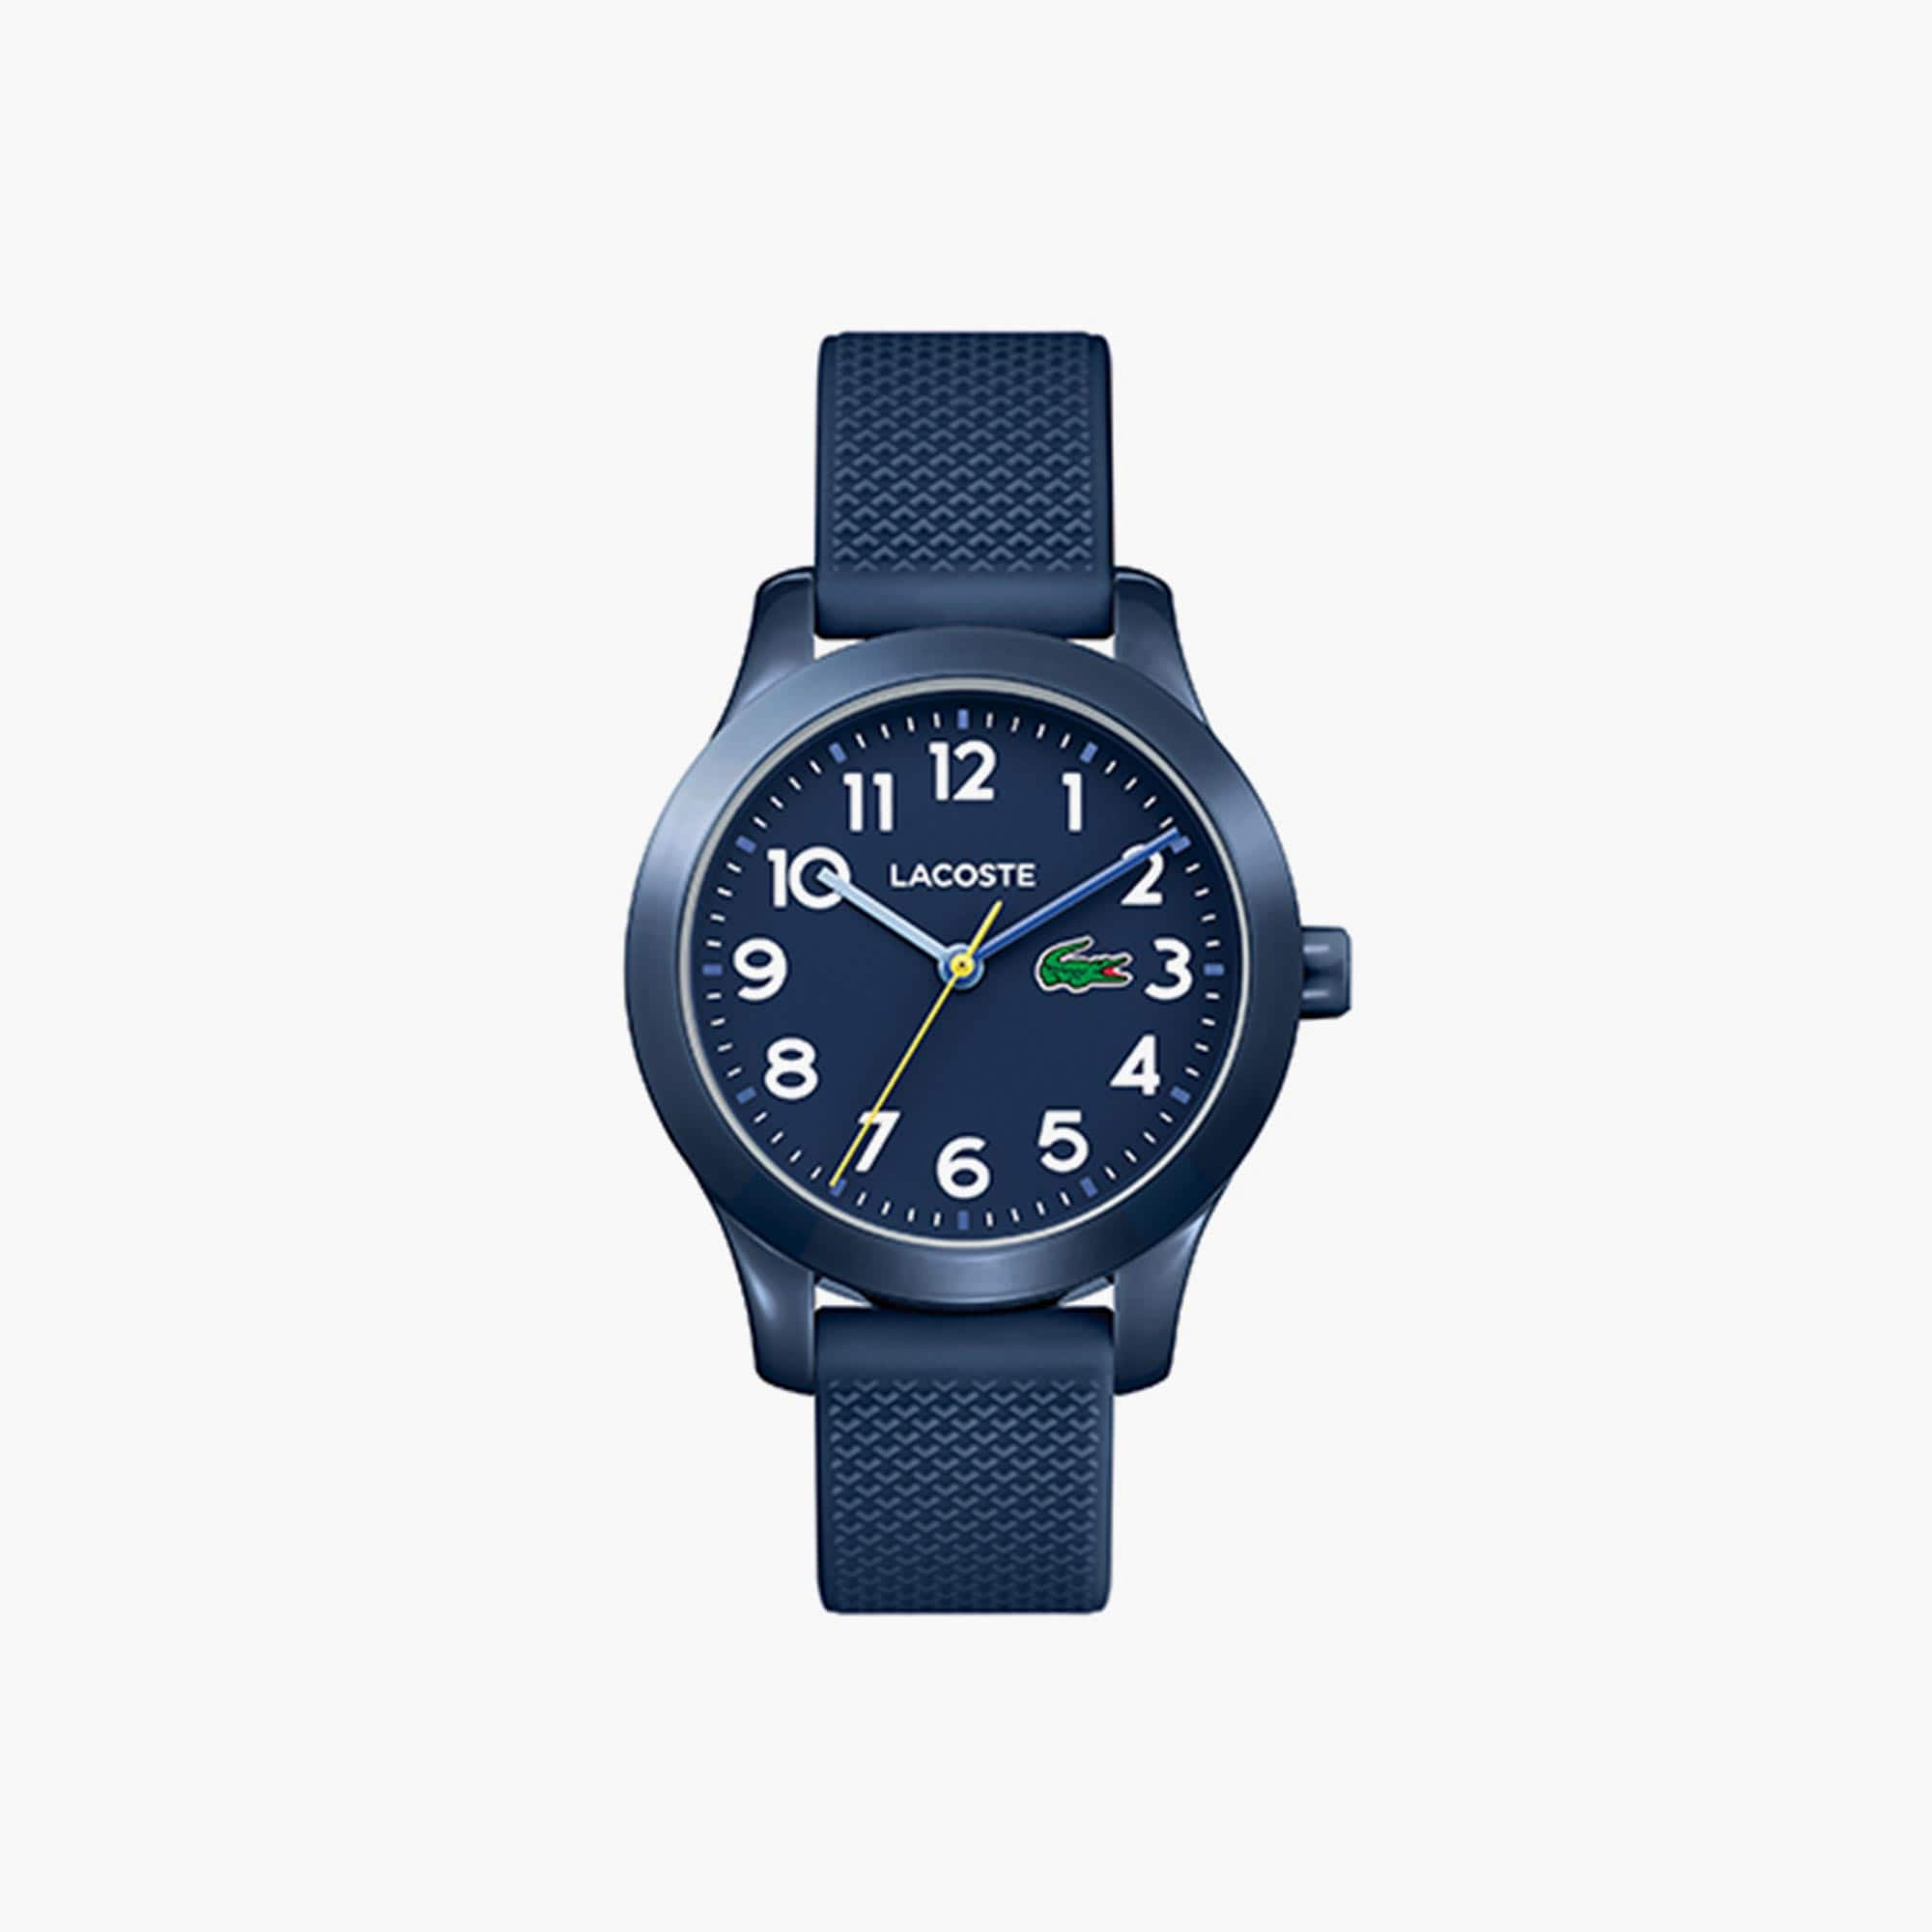 Child's Lacoste 12.12 Watch with Blue Silicone Strap